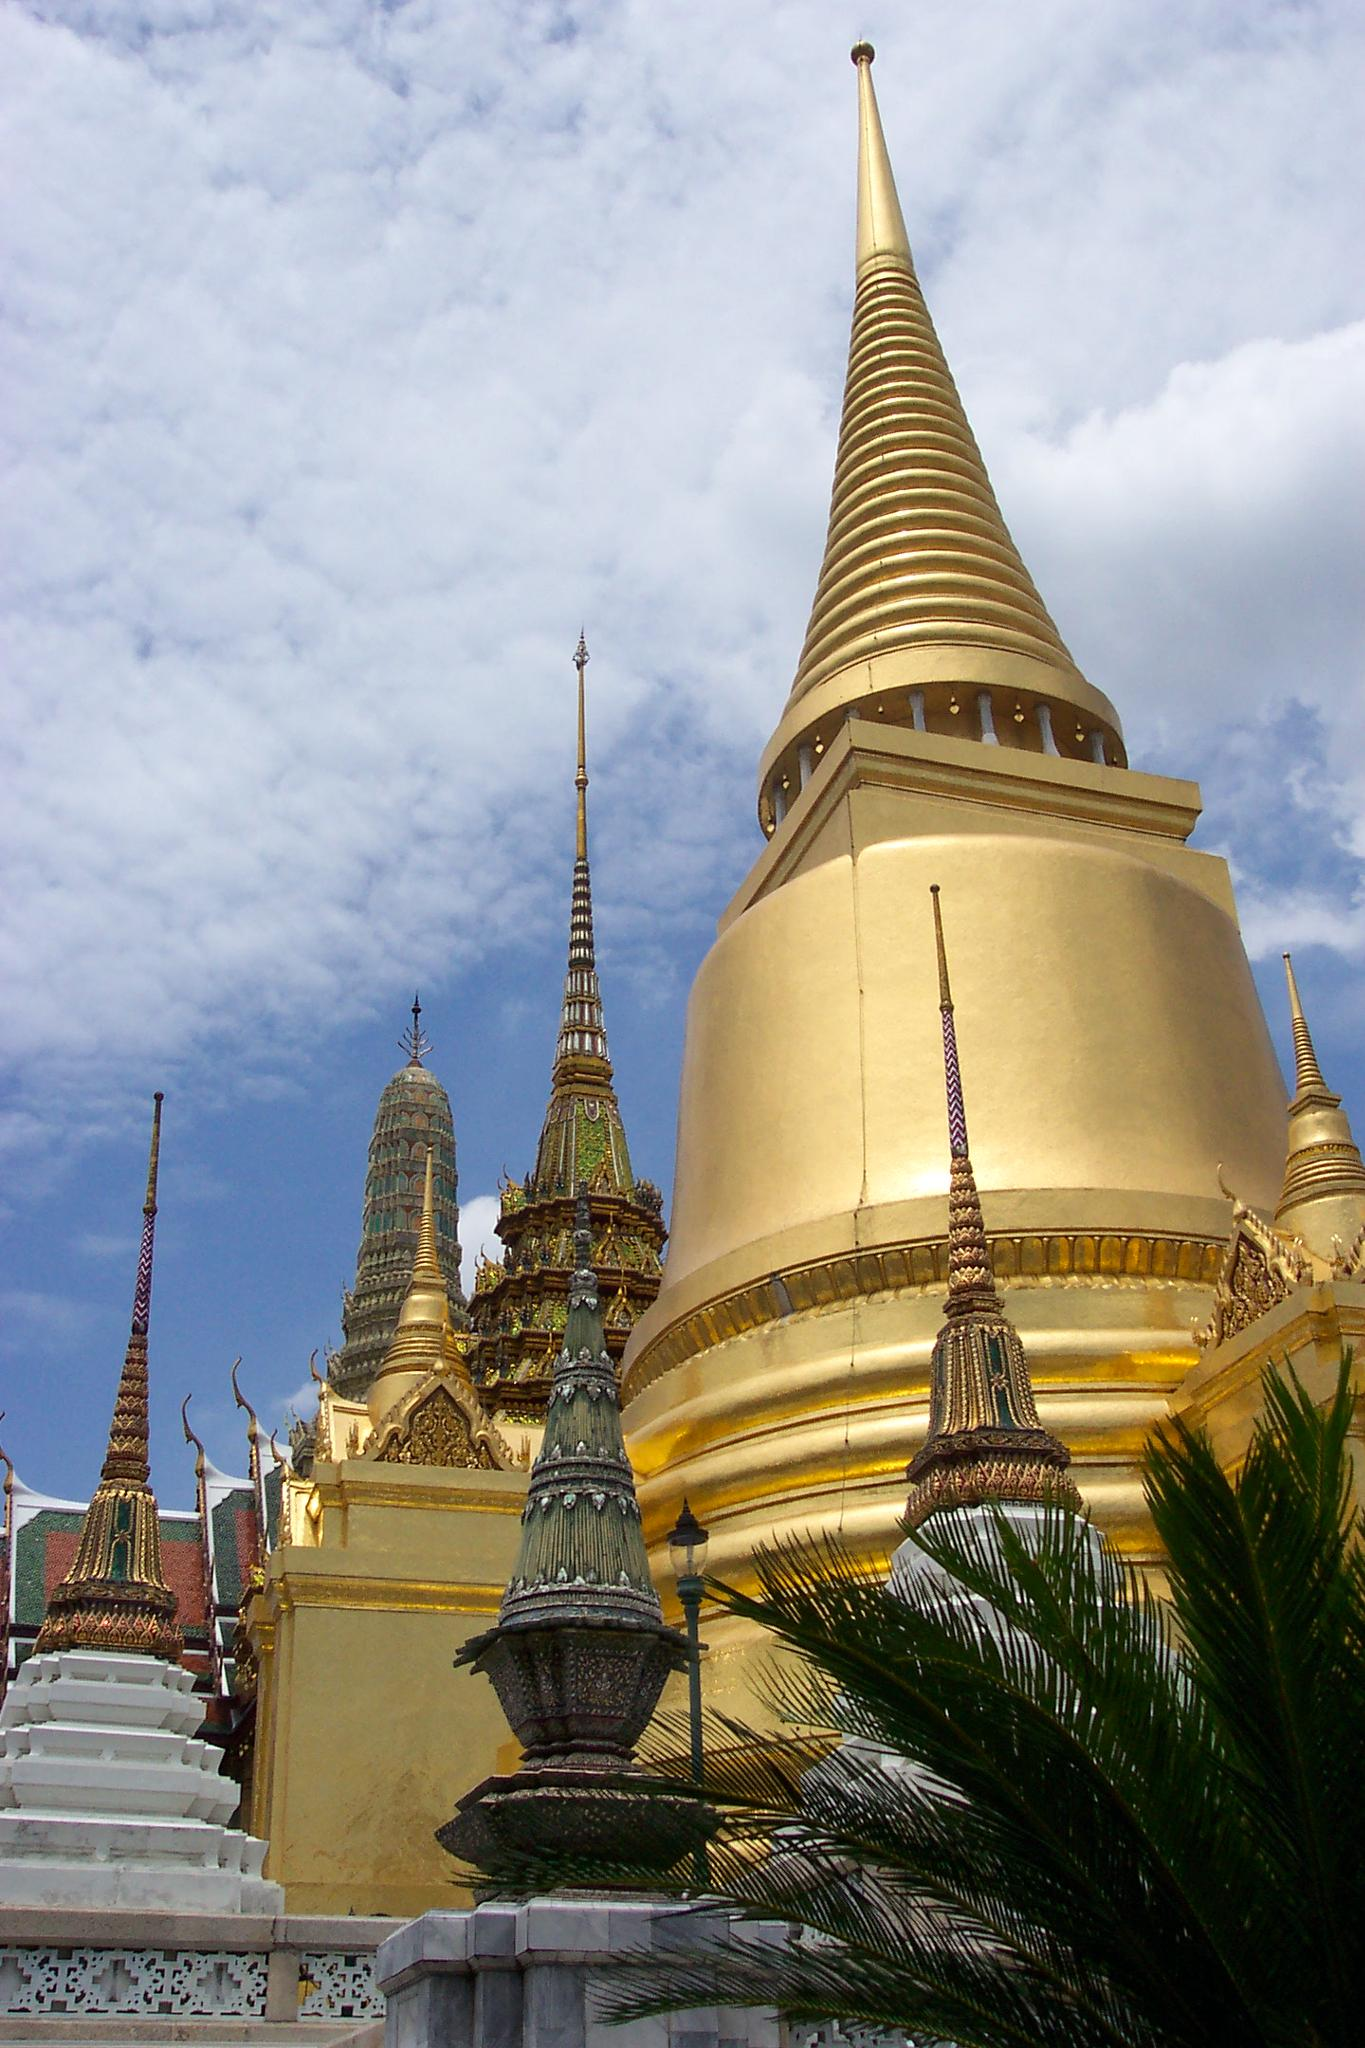 grand palace by ajkroon